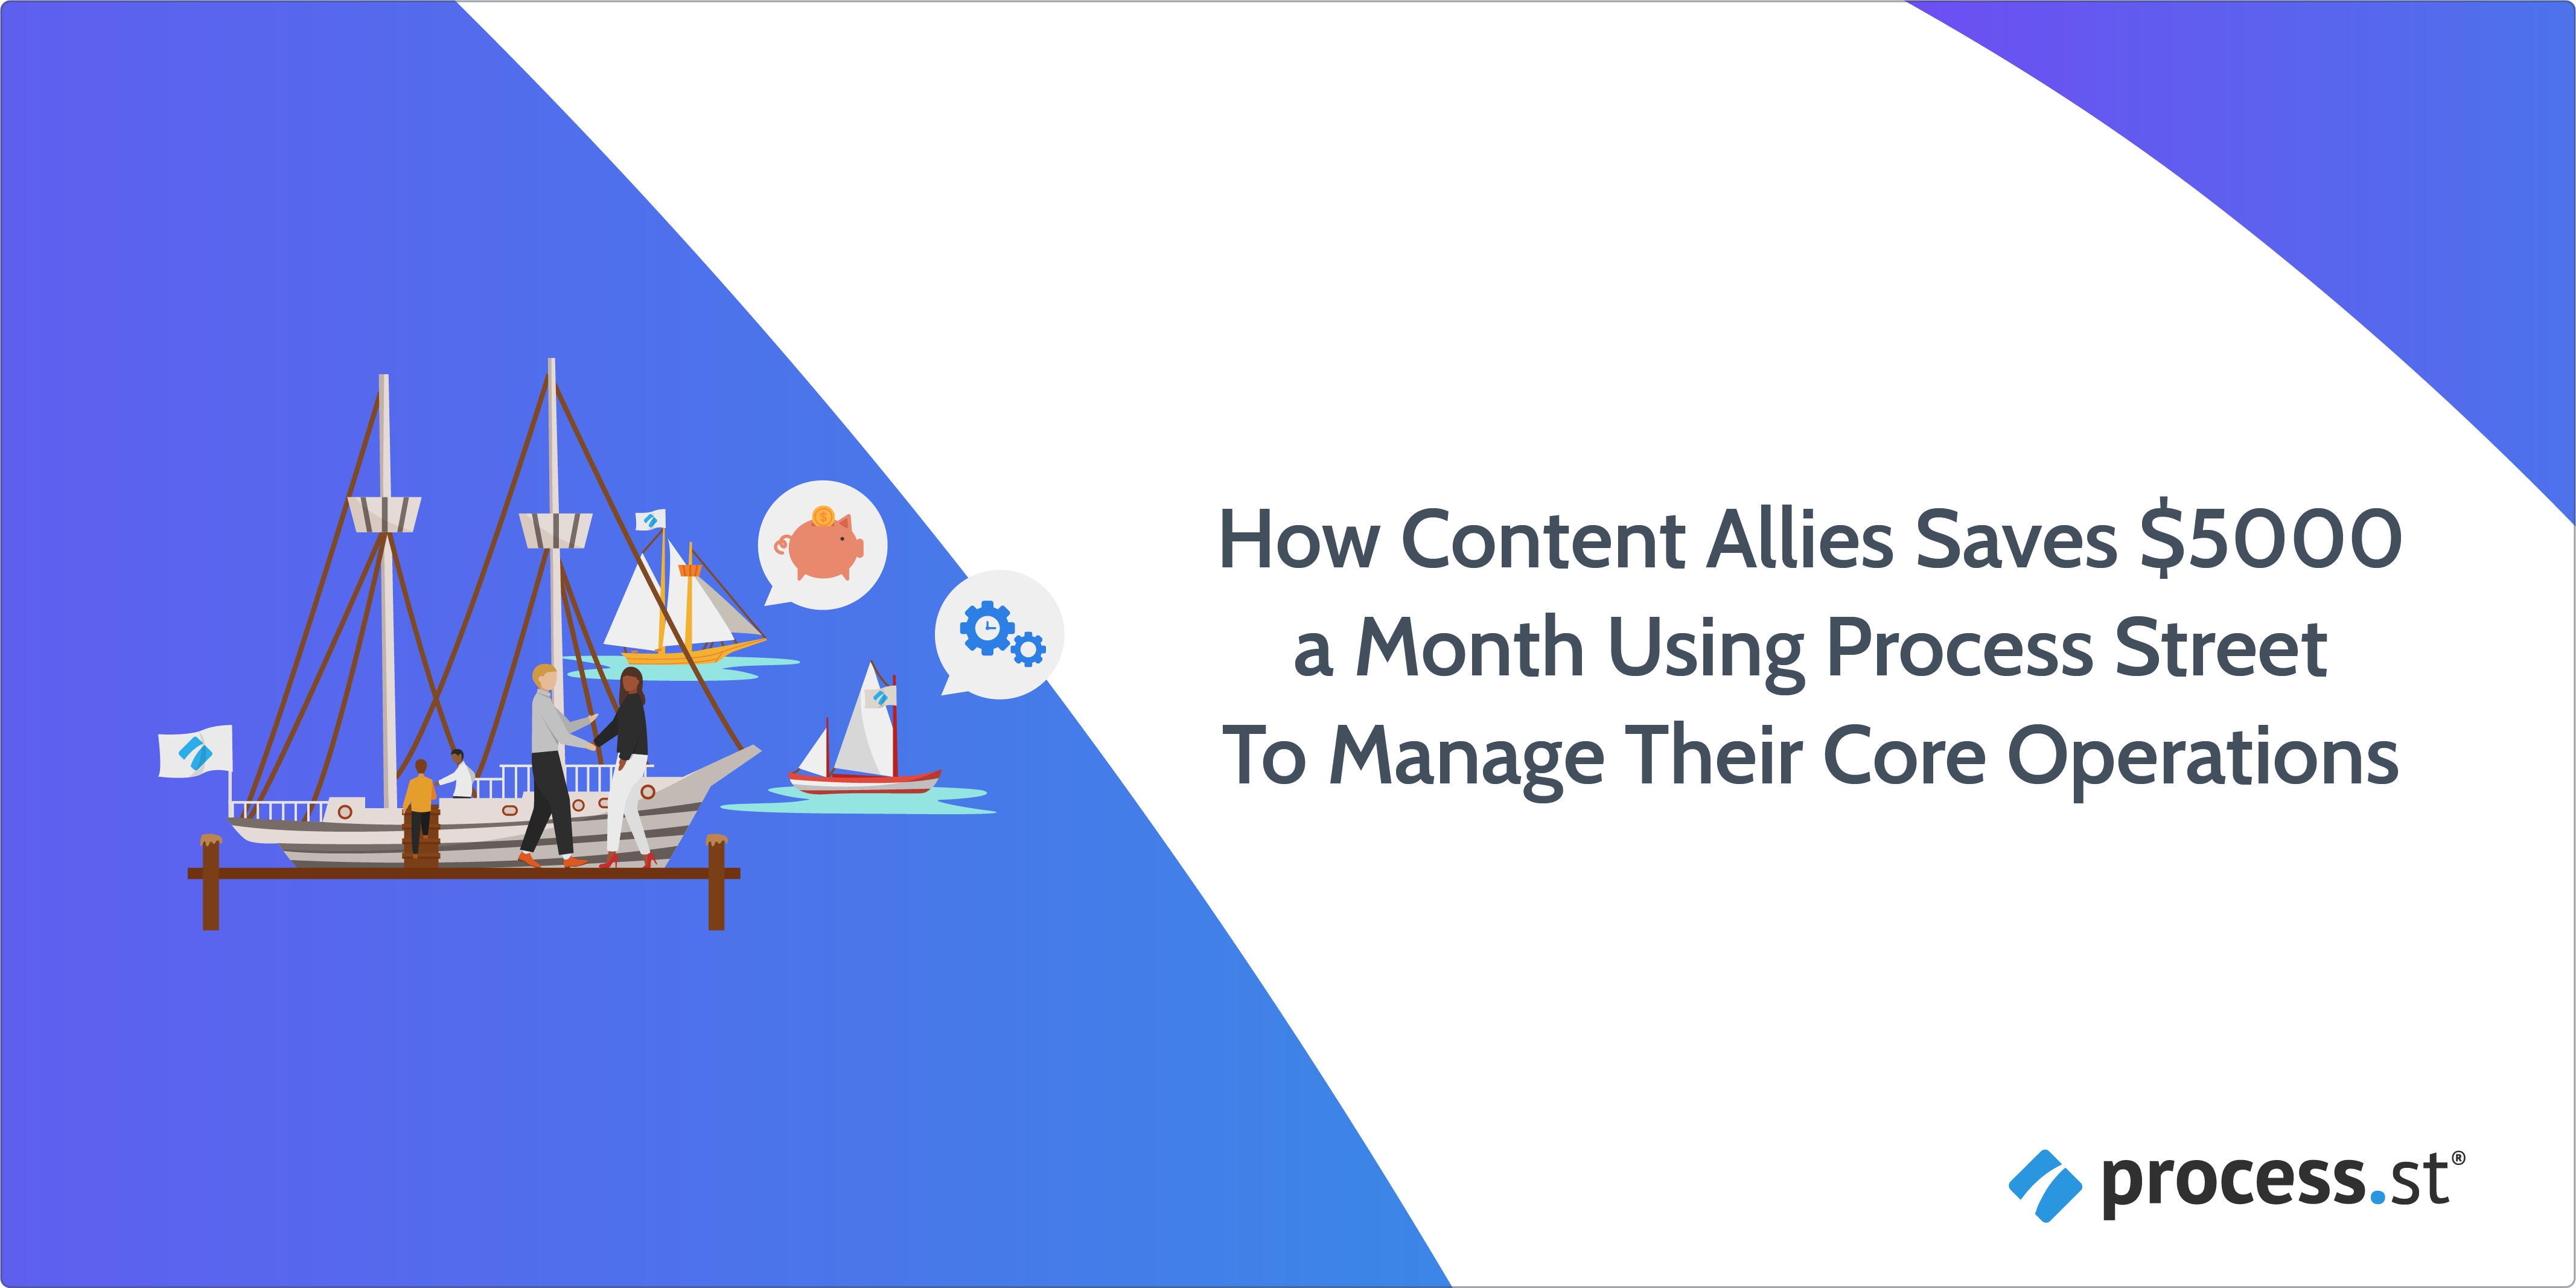 How Content Allies Saves $5000 a Month Using Process Street-01 (1)